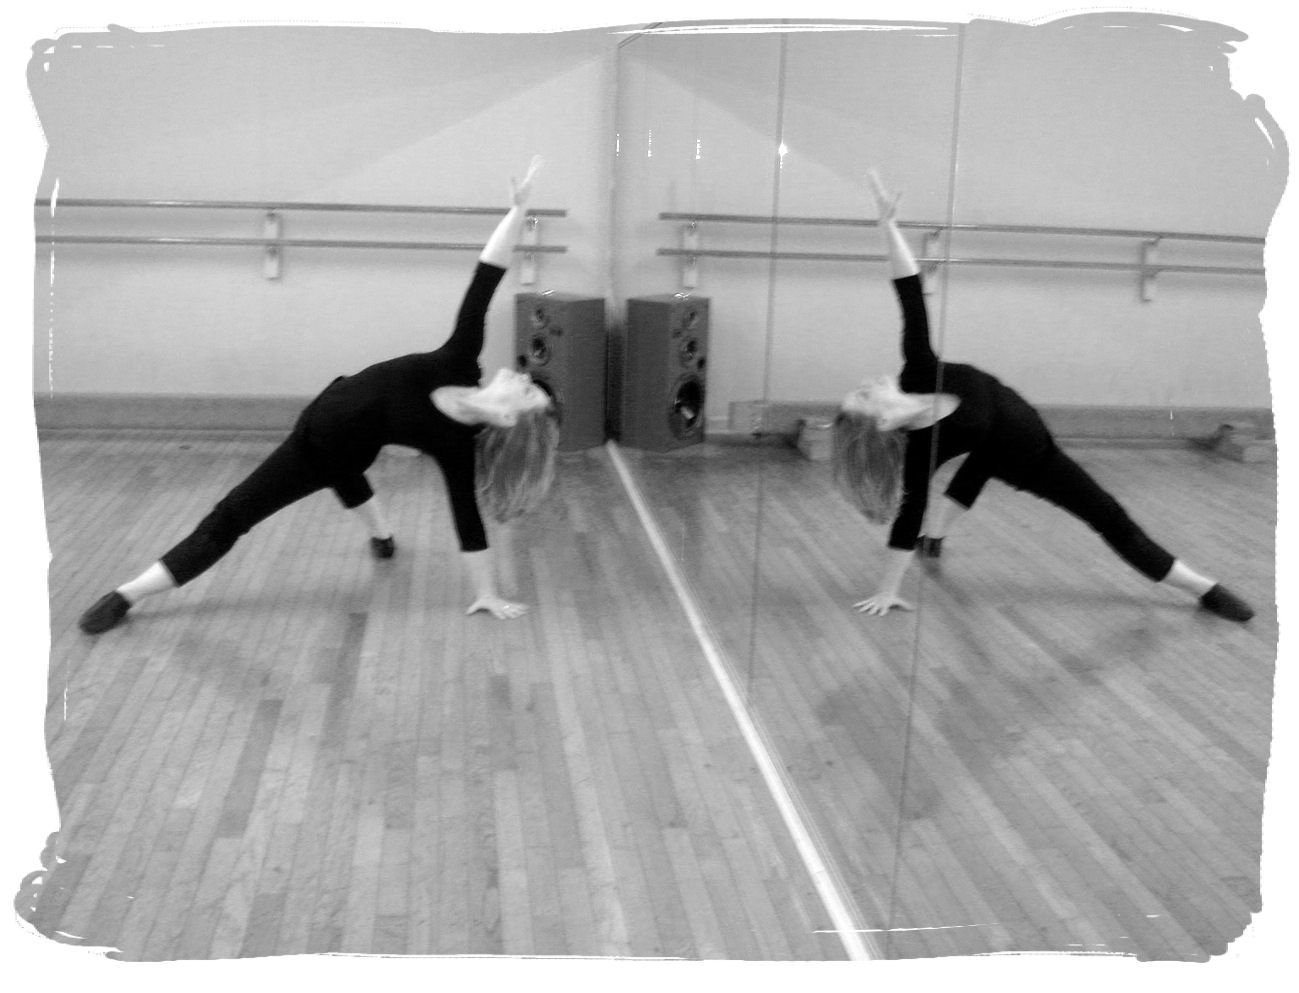 Dancing with the feet is one thing but dancing with the for Dance mirrors